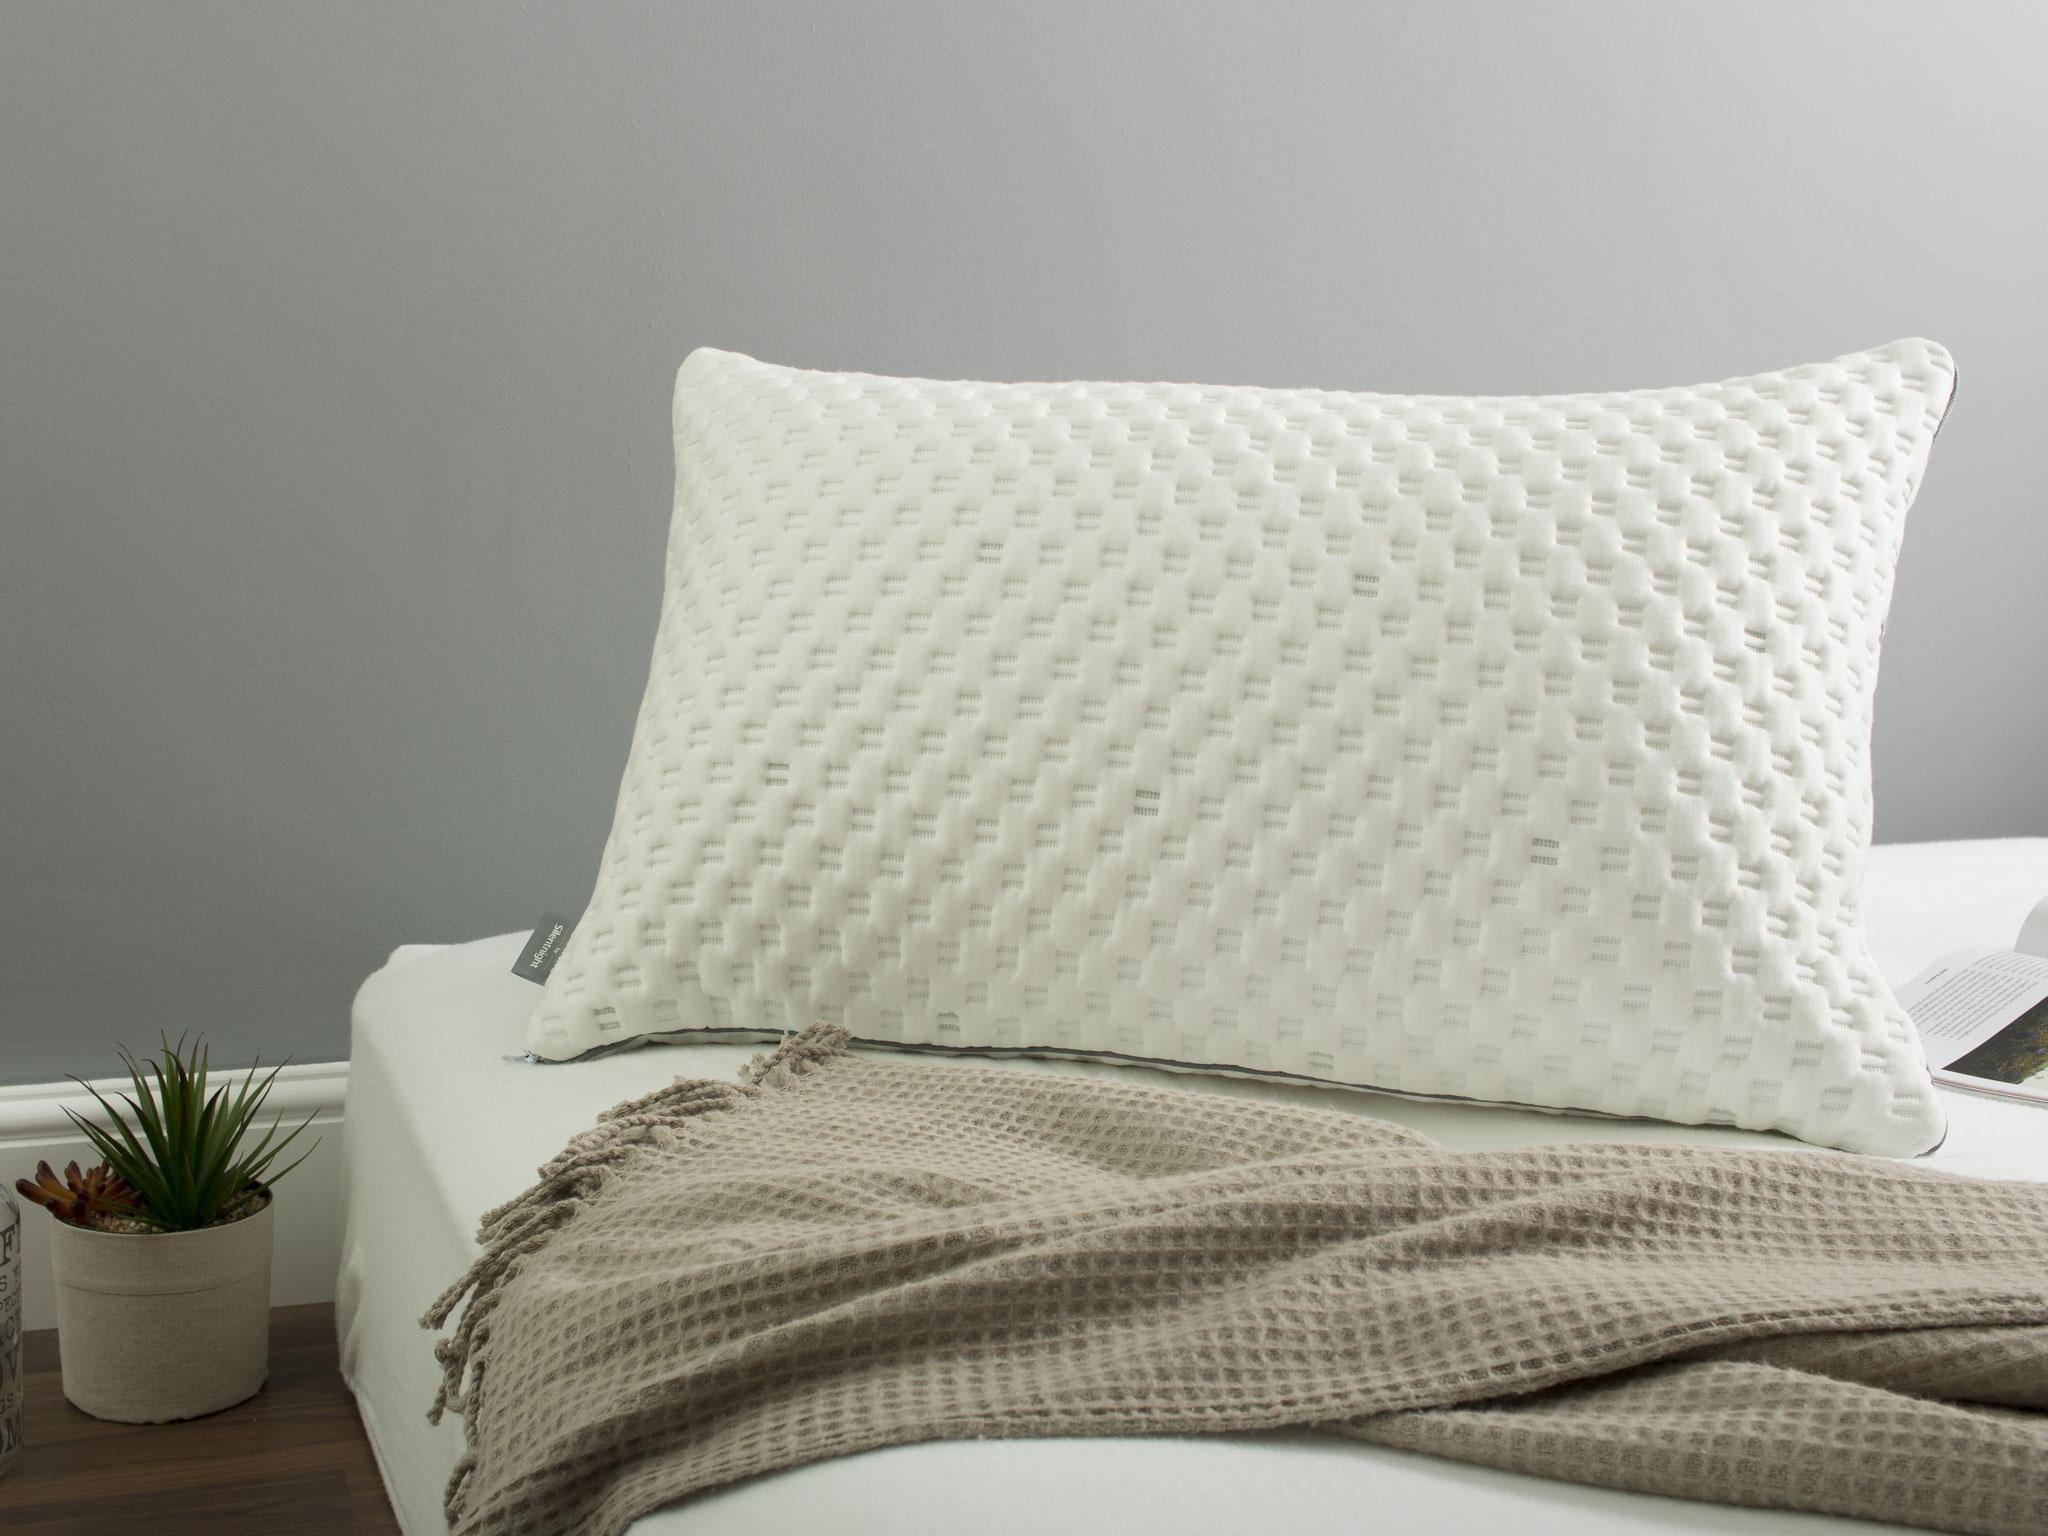 A poor mattress or lacklustre duvet can result in a res...